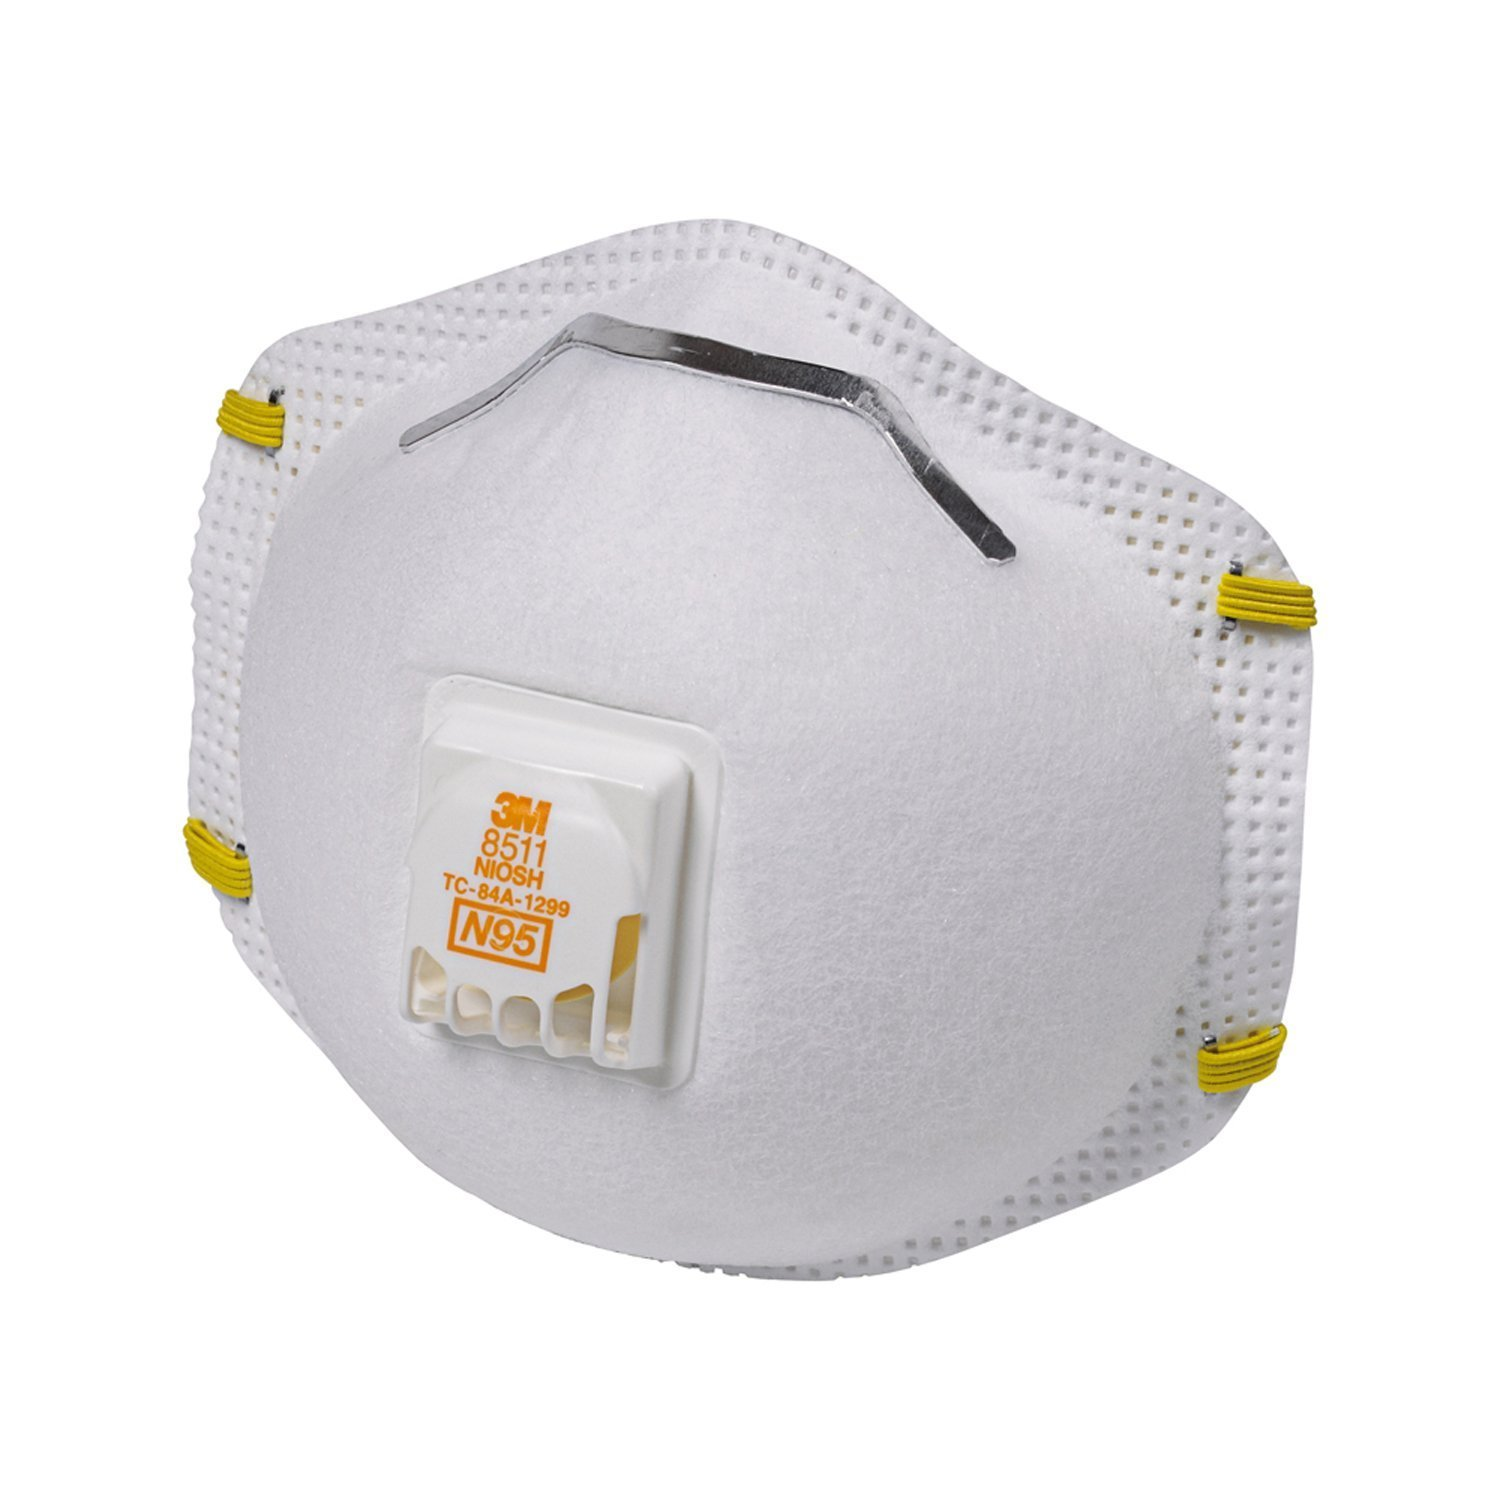 80 Pcs 3m 8511 Particulate Sanding Respirator N95 with Valve, (1-case of 8-boxes)